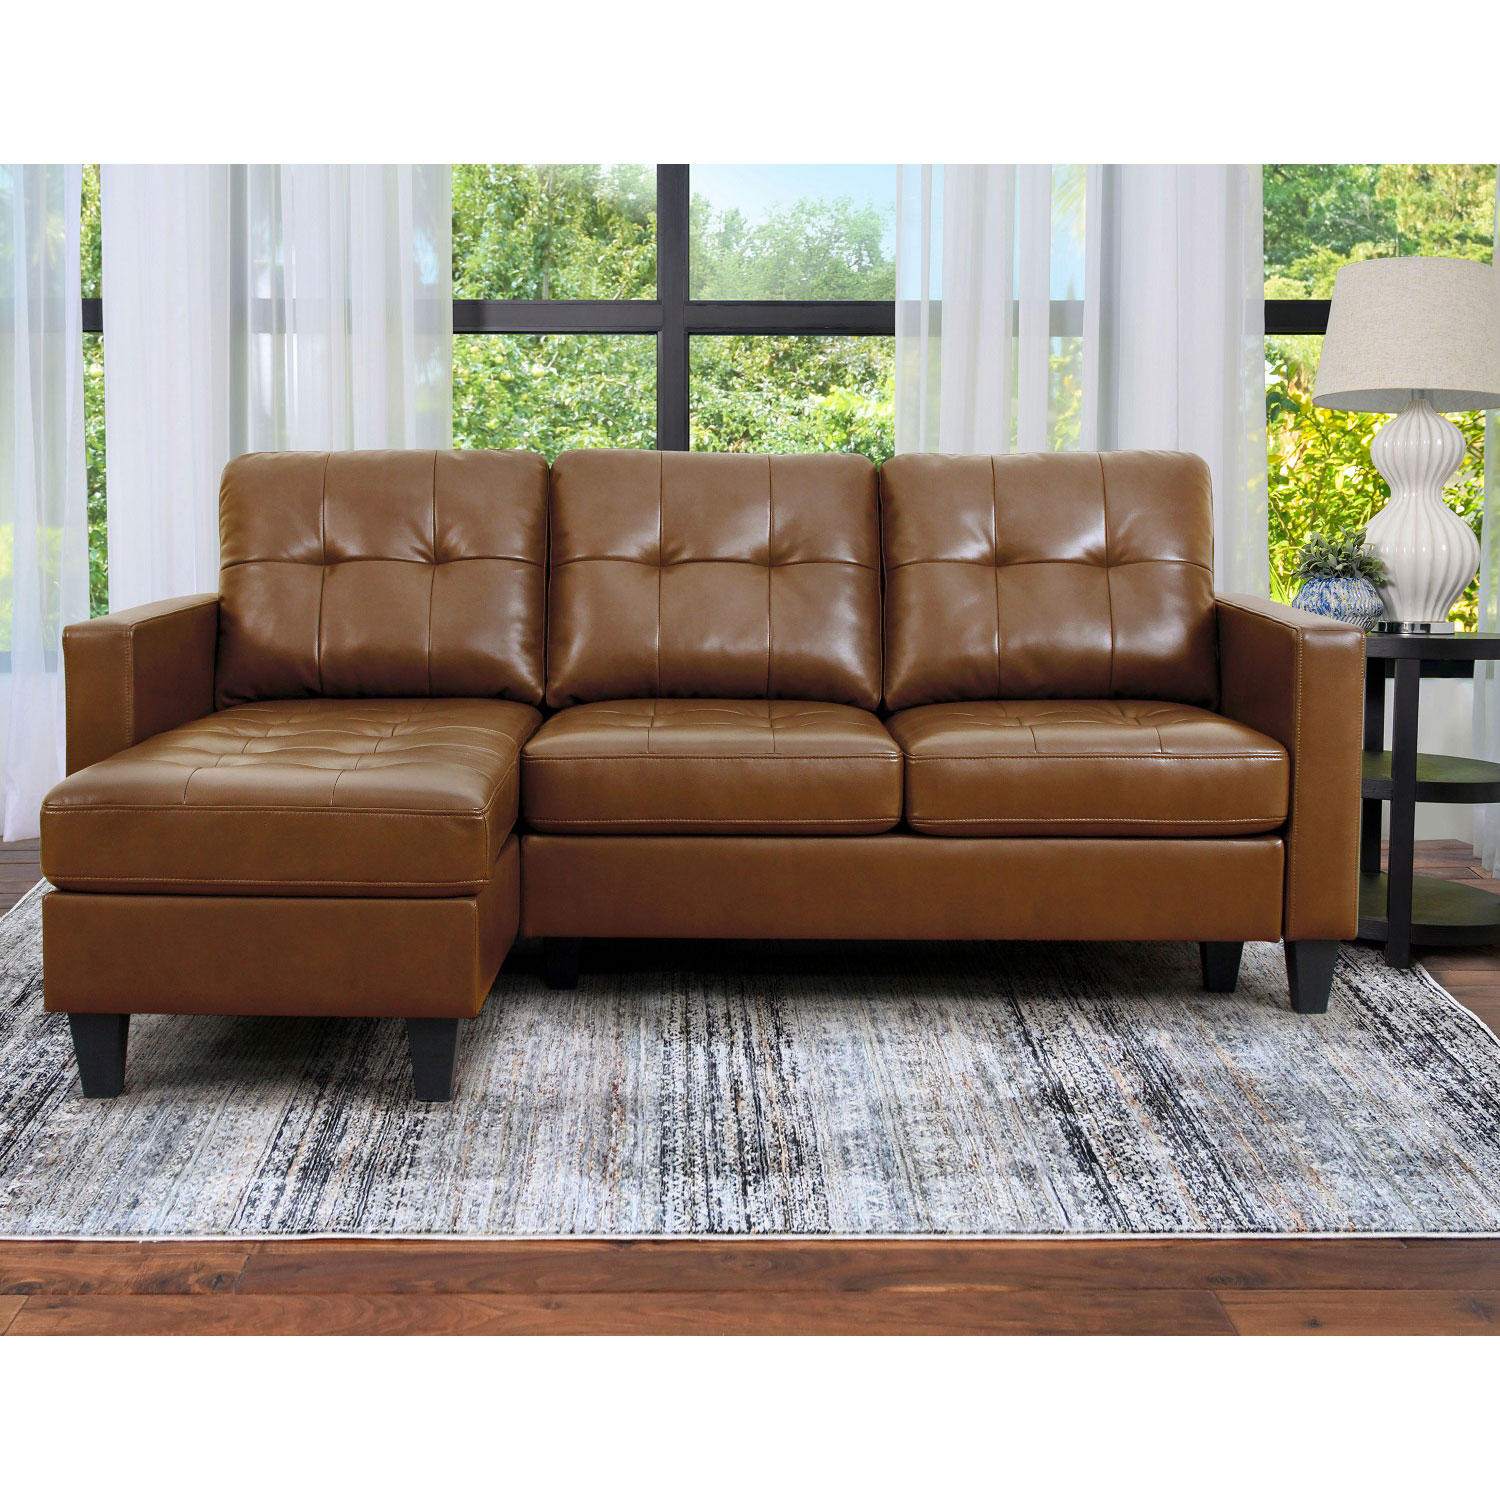 Abbyson Living Ashbury Tufted Reversible Sectional